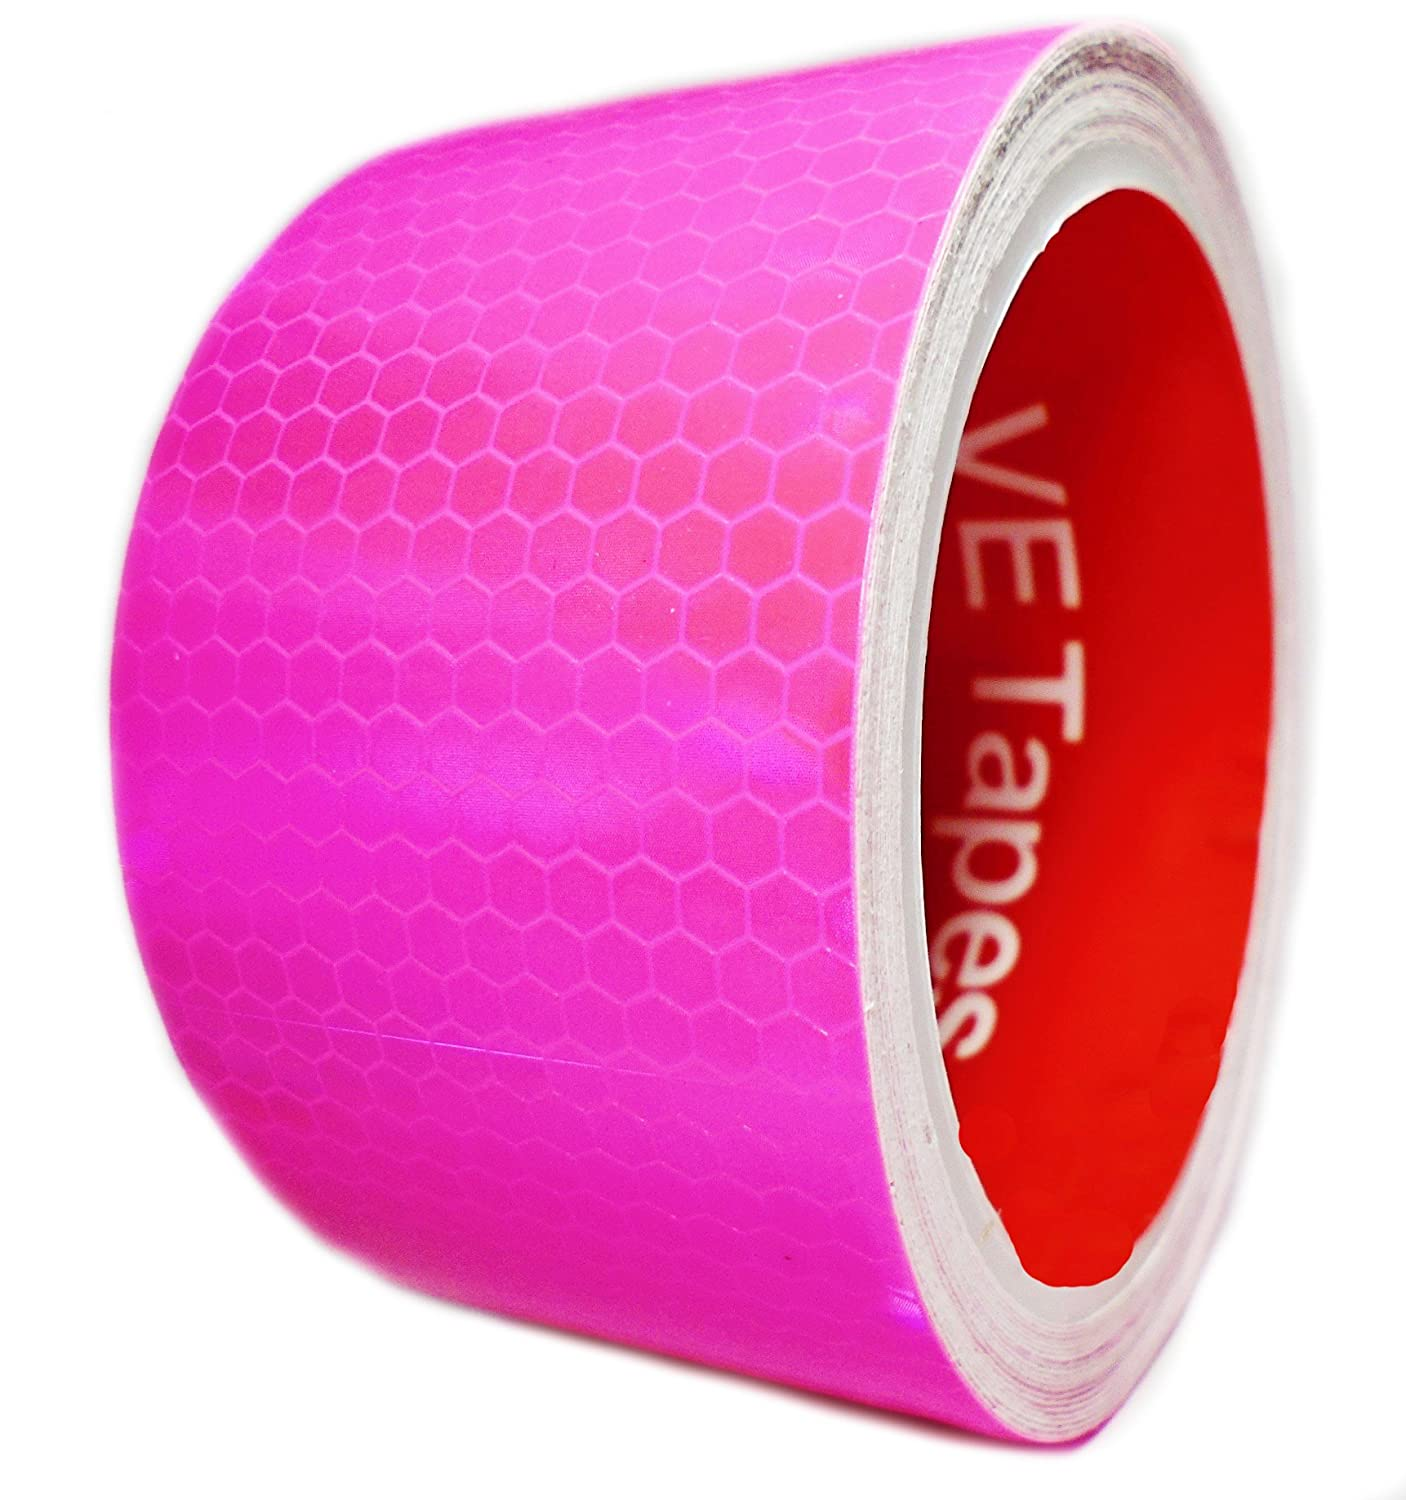 VE Tapes 5M x 50mm High Intensity Reflective Tape Vinyl Roll Self-Adhesive (Yellow)